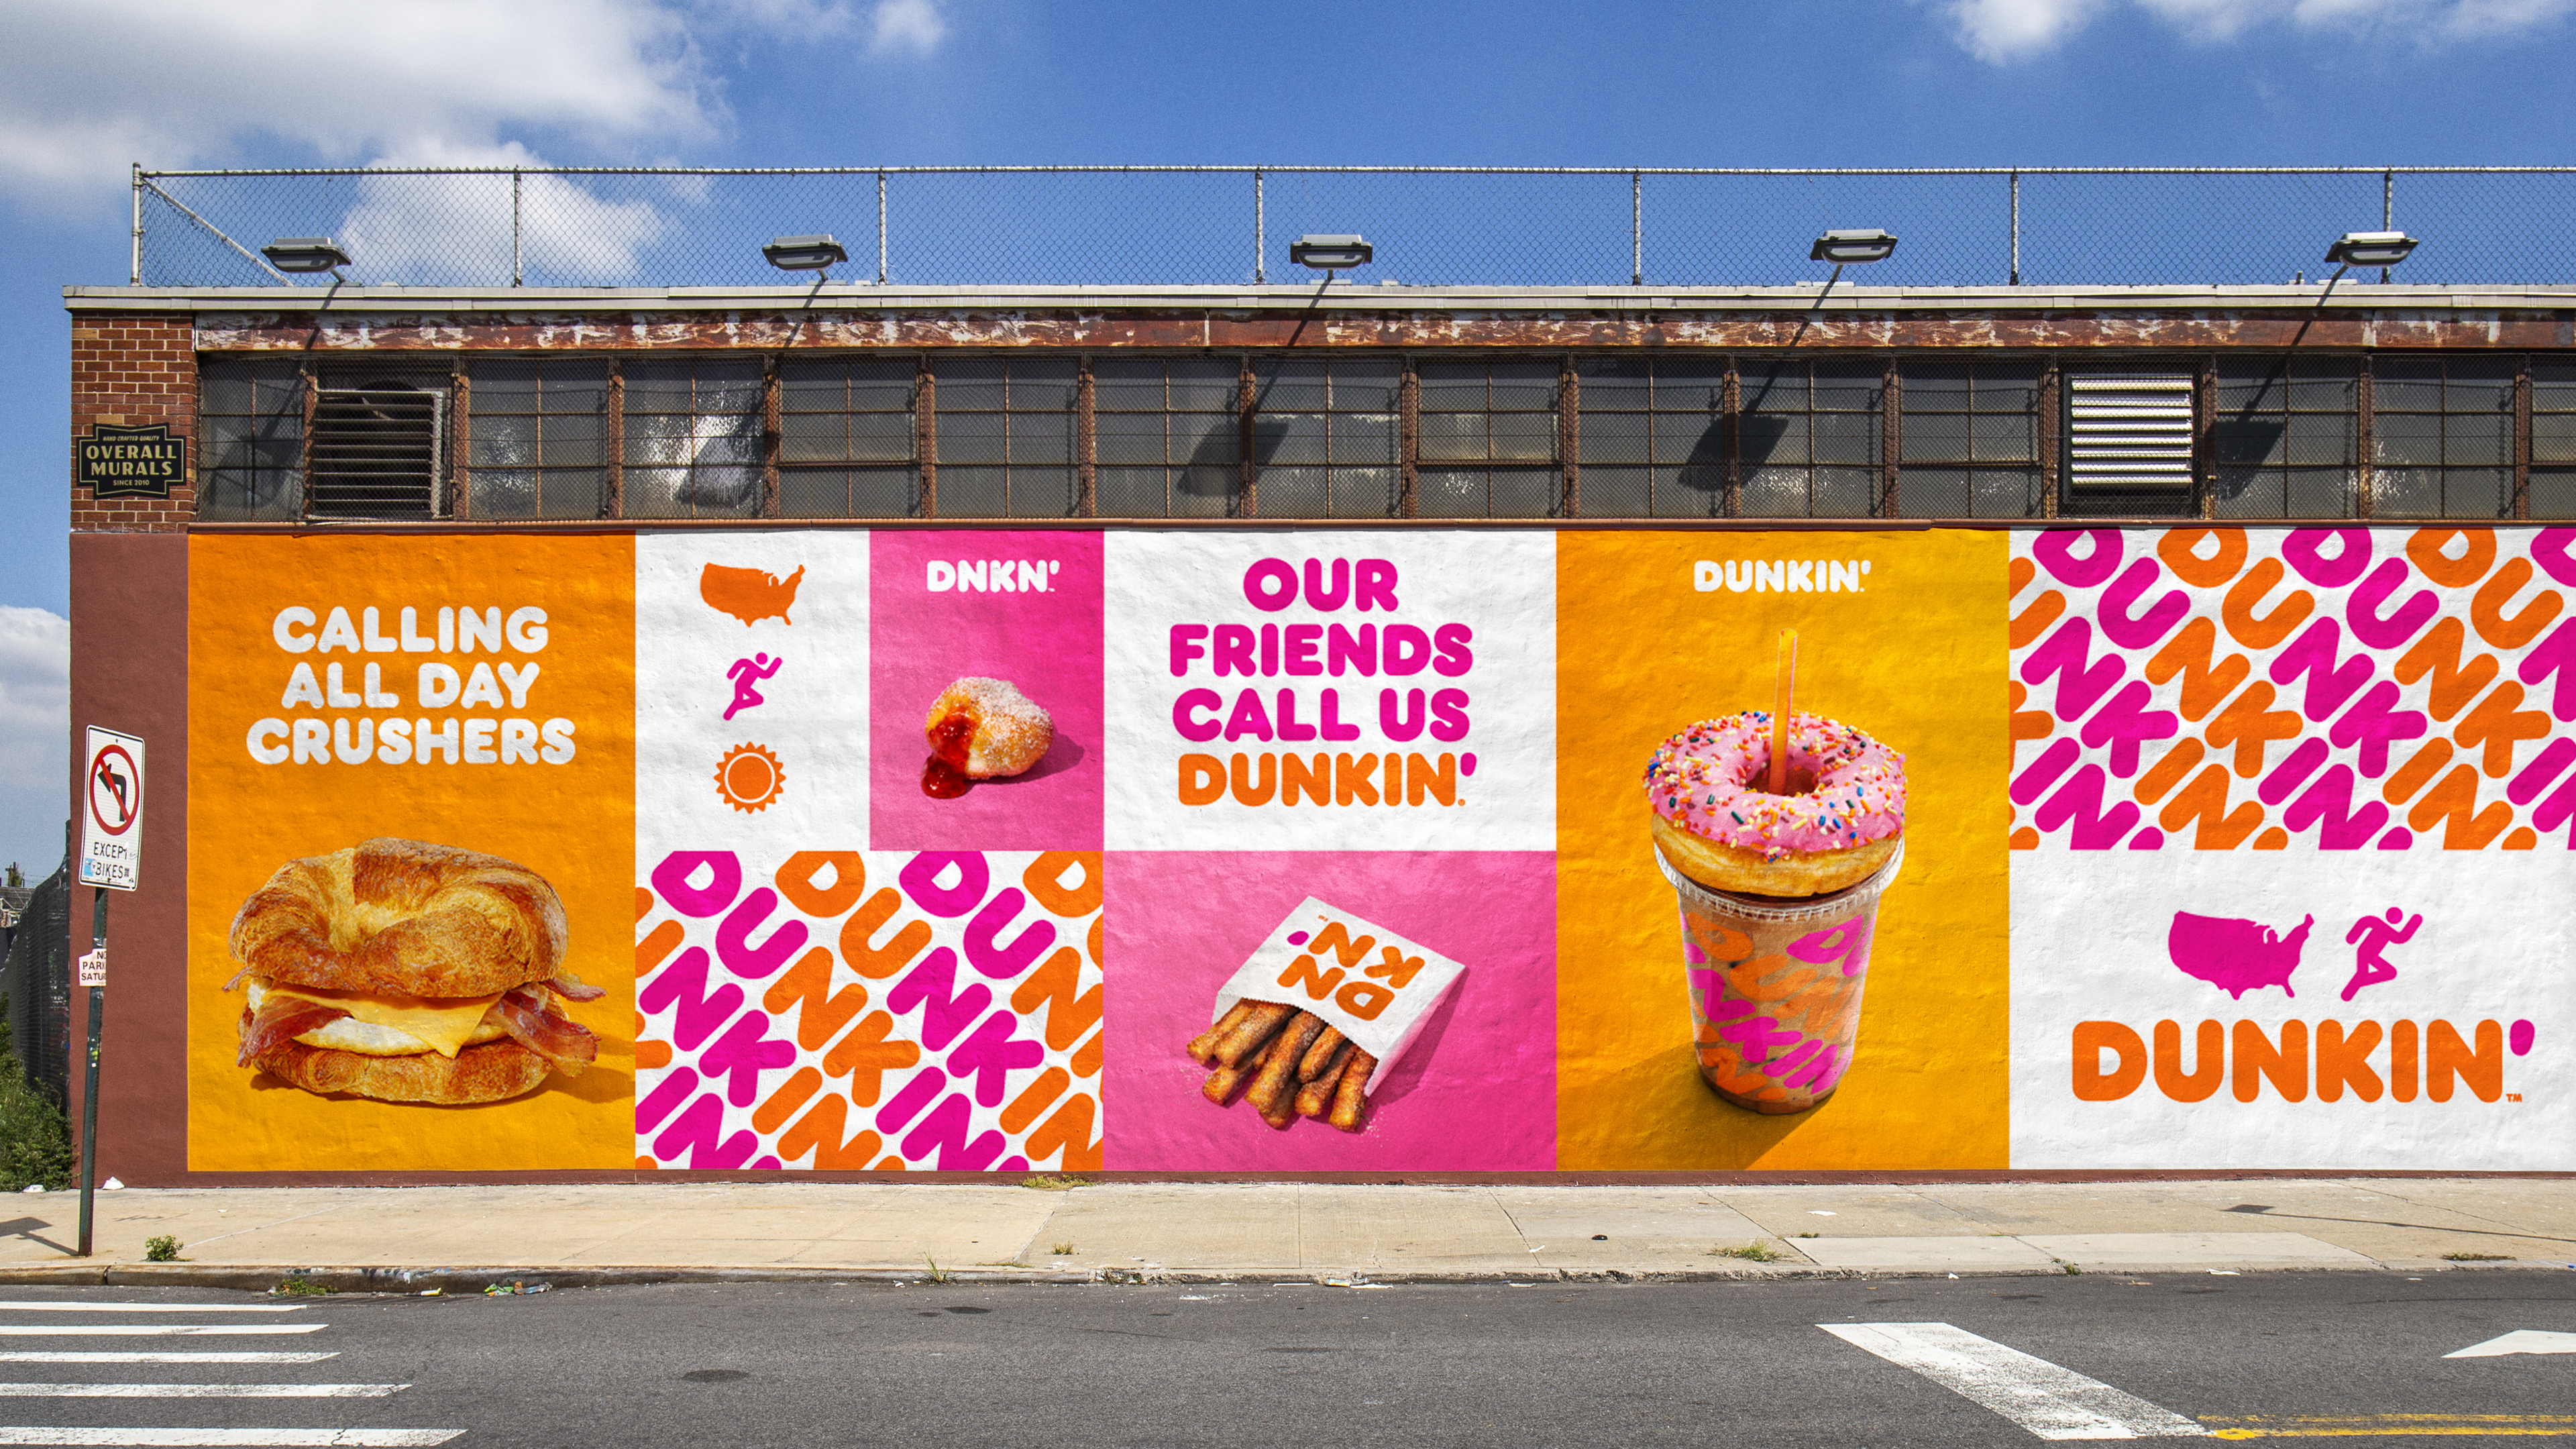 Welcome To Dunkin Dunkin Donuts Reveals New Brand Identity Dunkin